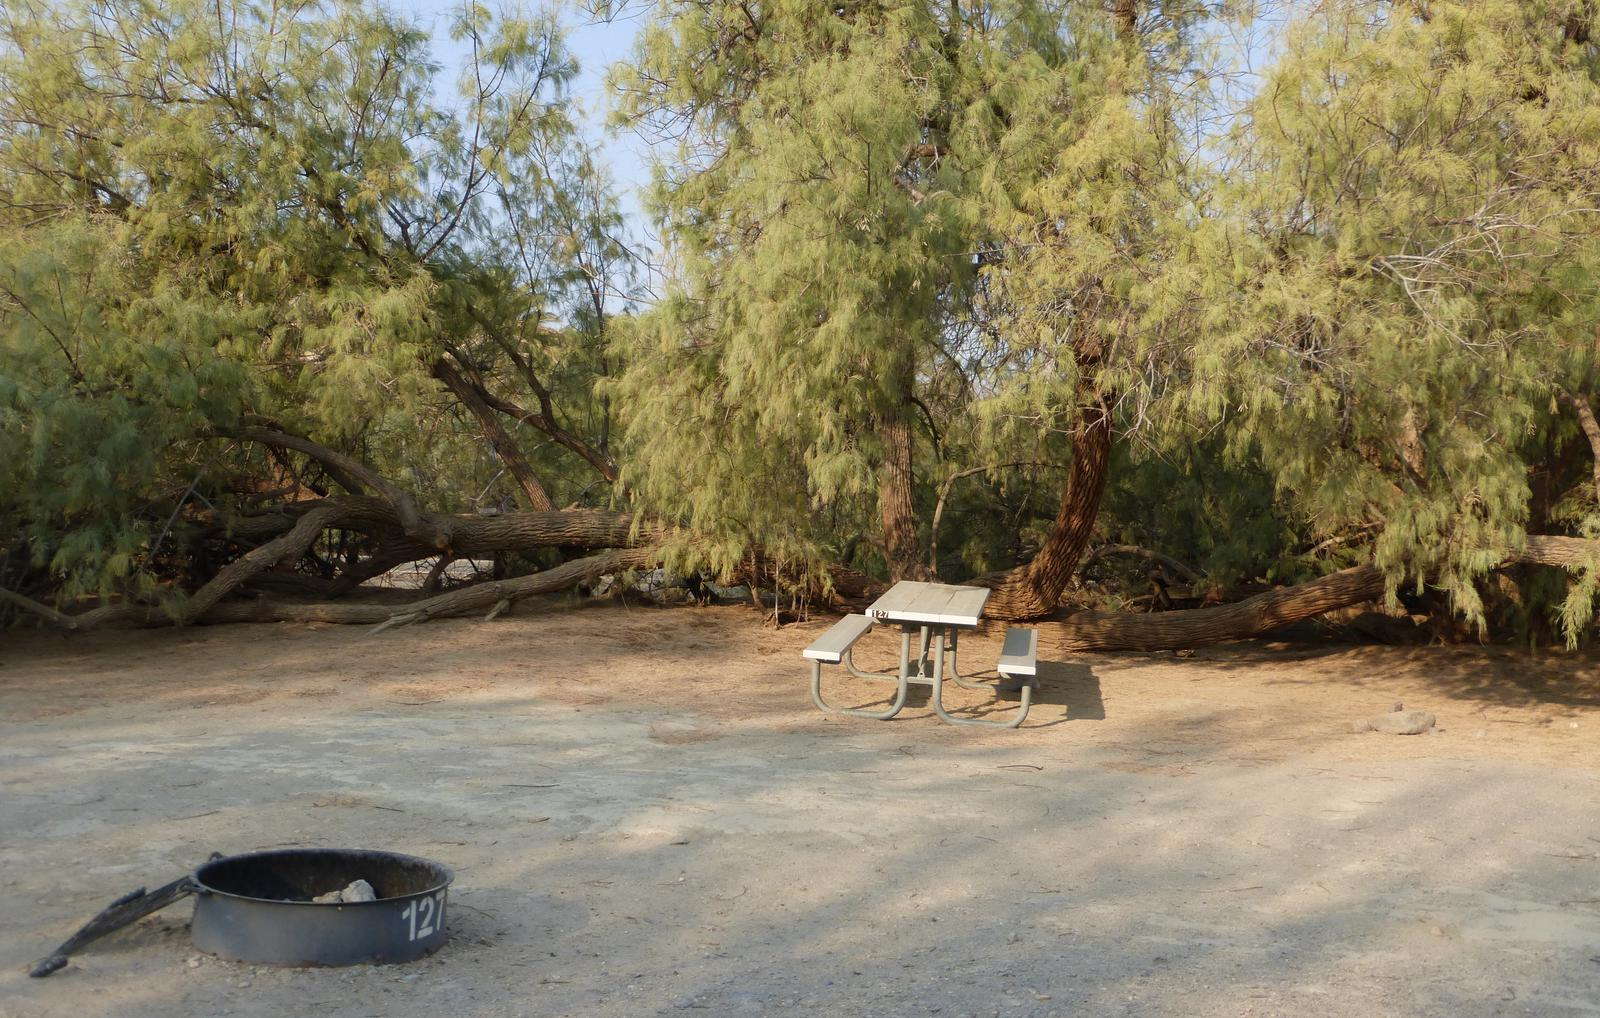 Tent only walk in site #127.  No campervans, RV's, or pop up tents.  One firepit with grate and one picnic table.  No utilities.